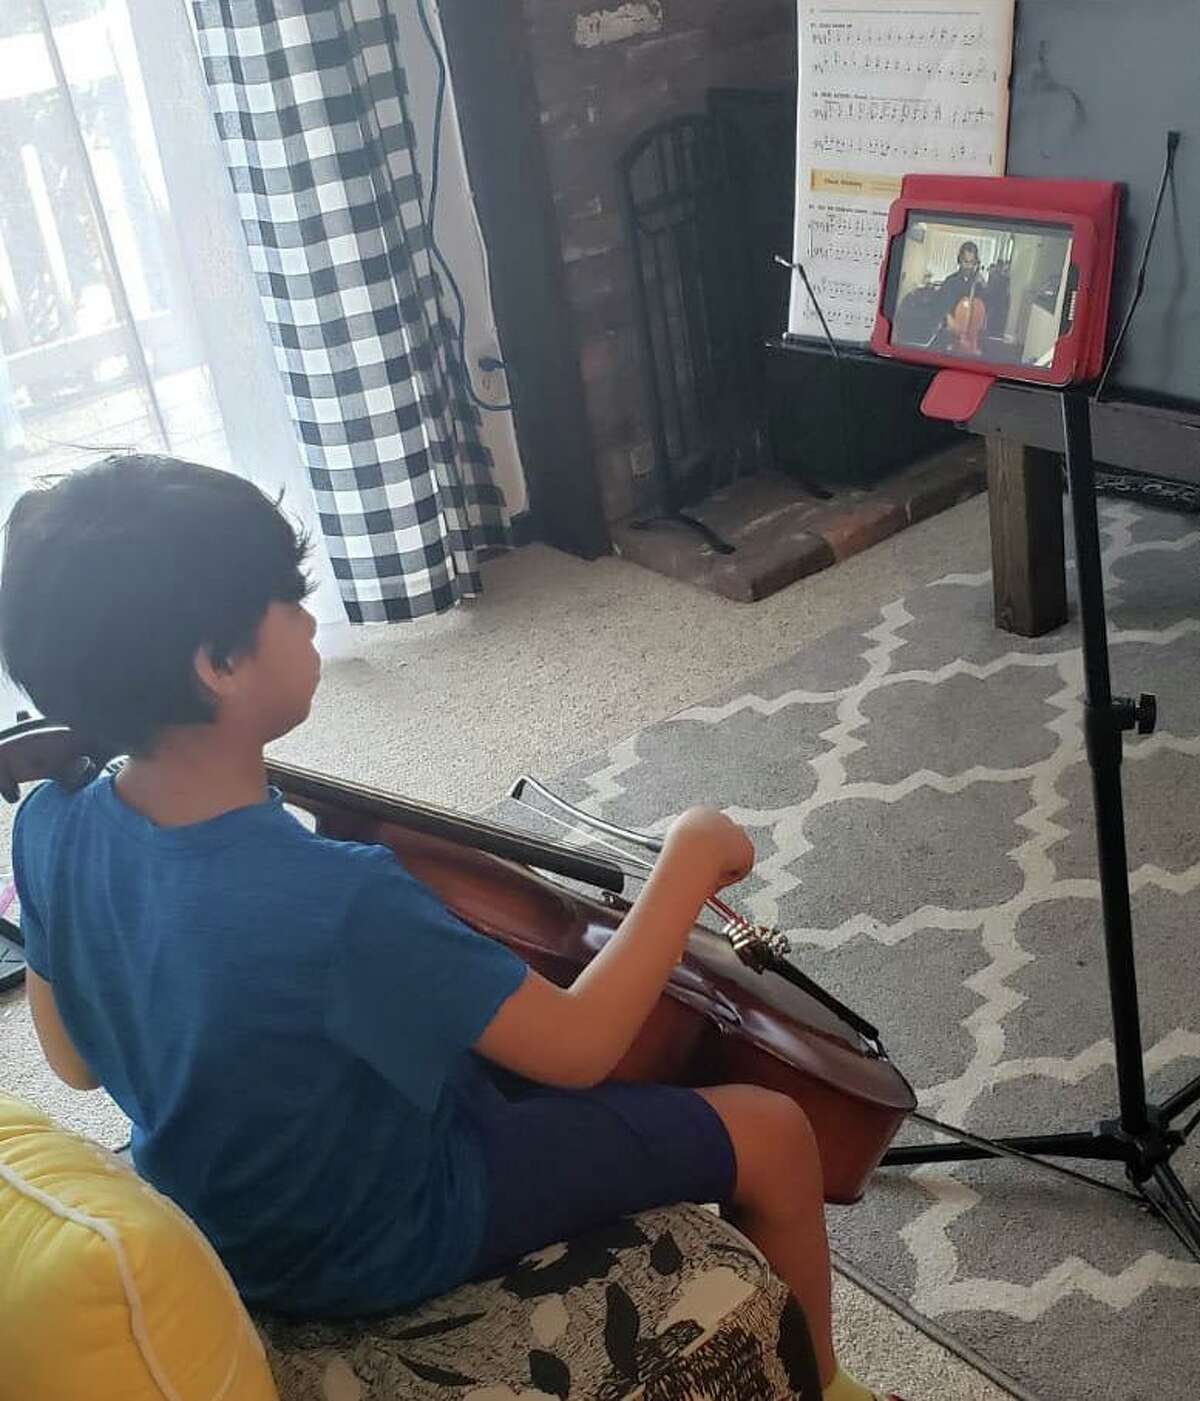 Eduardo (on cello) receiving an online music class from INTEMPO's teaching artist, Colin Benn. They are practicing the Brazilian repertoire for the upcoming online Cultural Crossover Concert on Saturday May 30 at 7 p.m. via Facebook and YouTube Live. INTEMPO's mission is to make intercultural music education and literacy relevant, accessible, and inclusive. It's students come from 4 different towns and 34 different schools in Fairfield County. To learn more, visit: www.intempo.org.